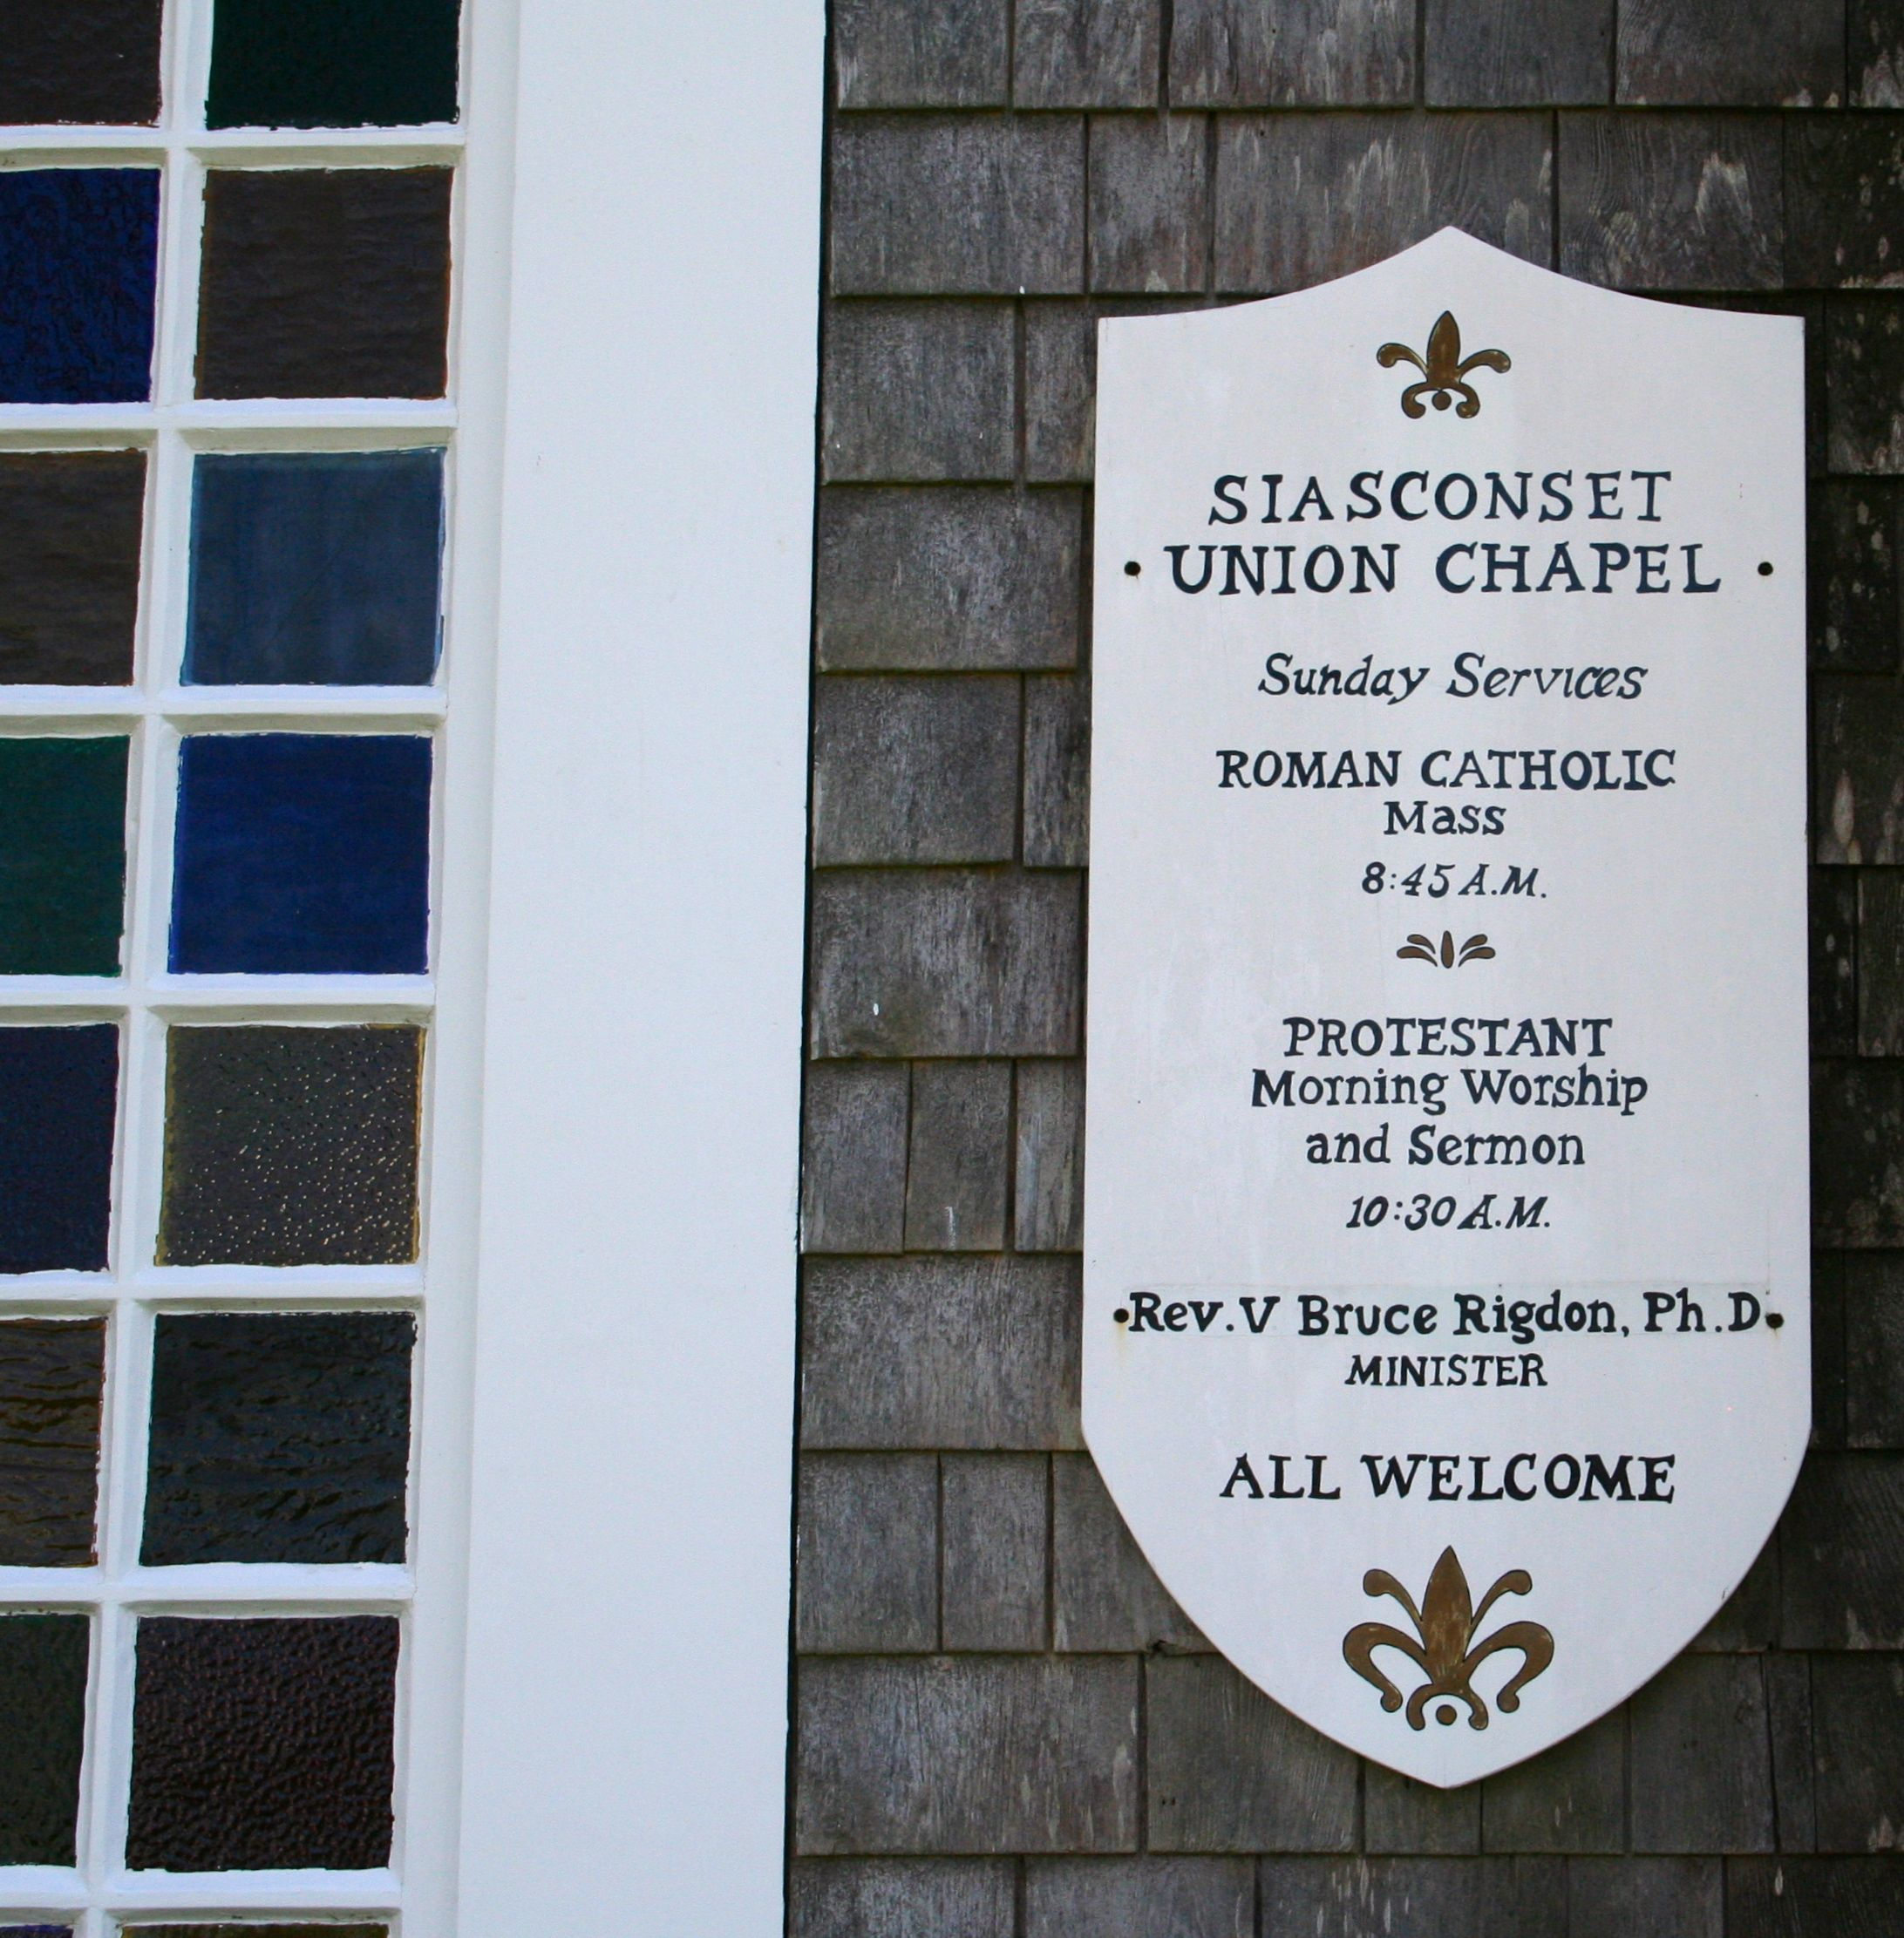 Siasconset Union Chapel Nantucket, Nantucket, Nantucket